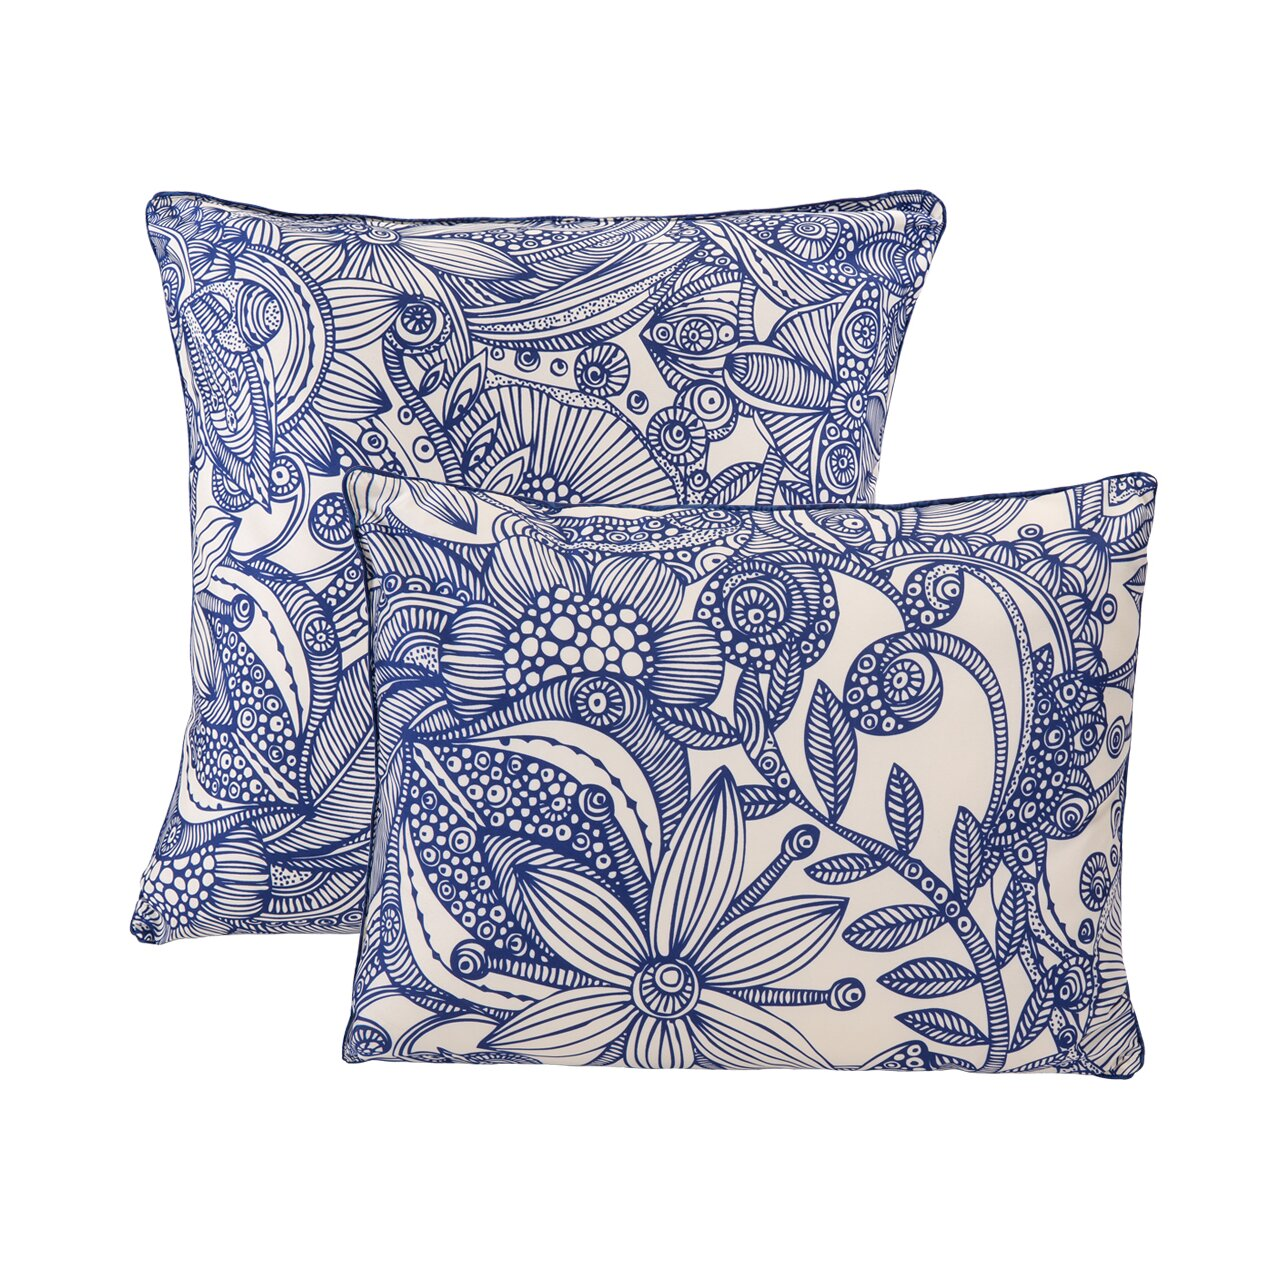 Throw Pillow Doodle : Valentina Flowers and Doodle Microfiber Decorative Throw Pillow Wayfair